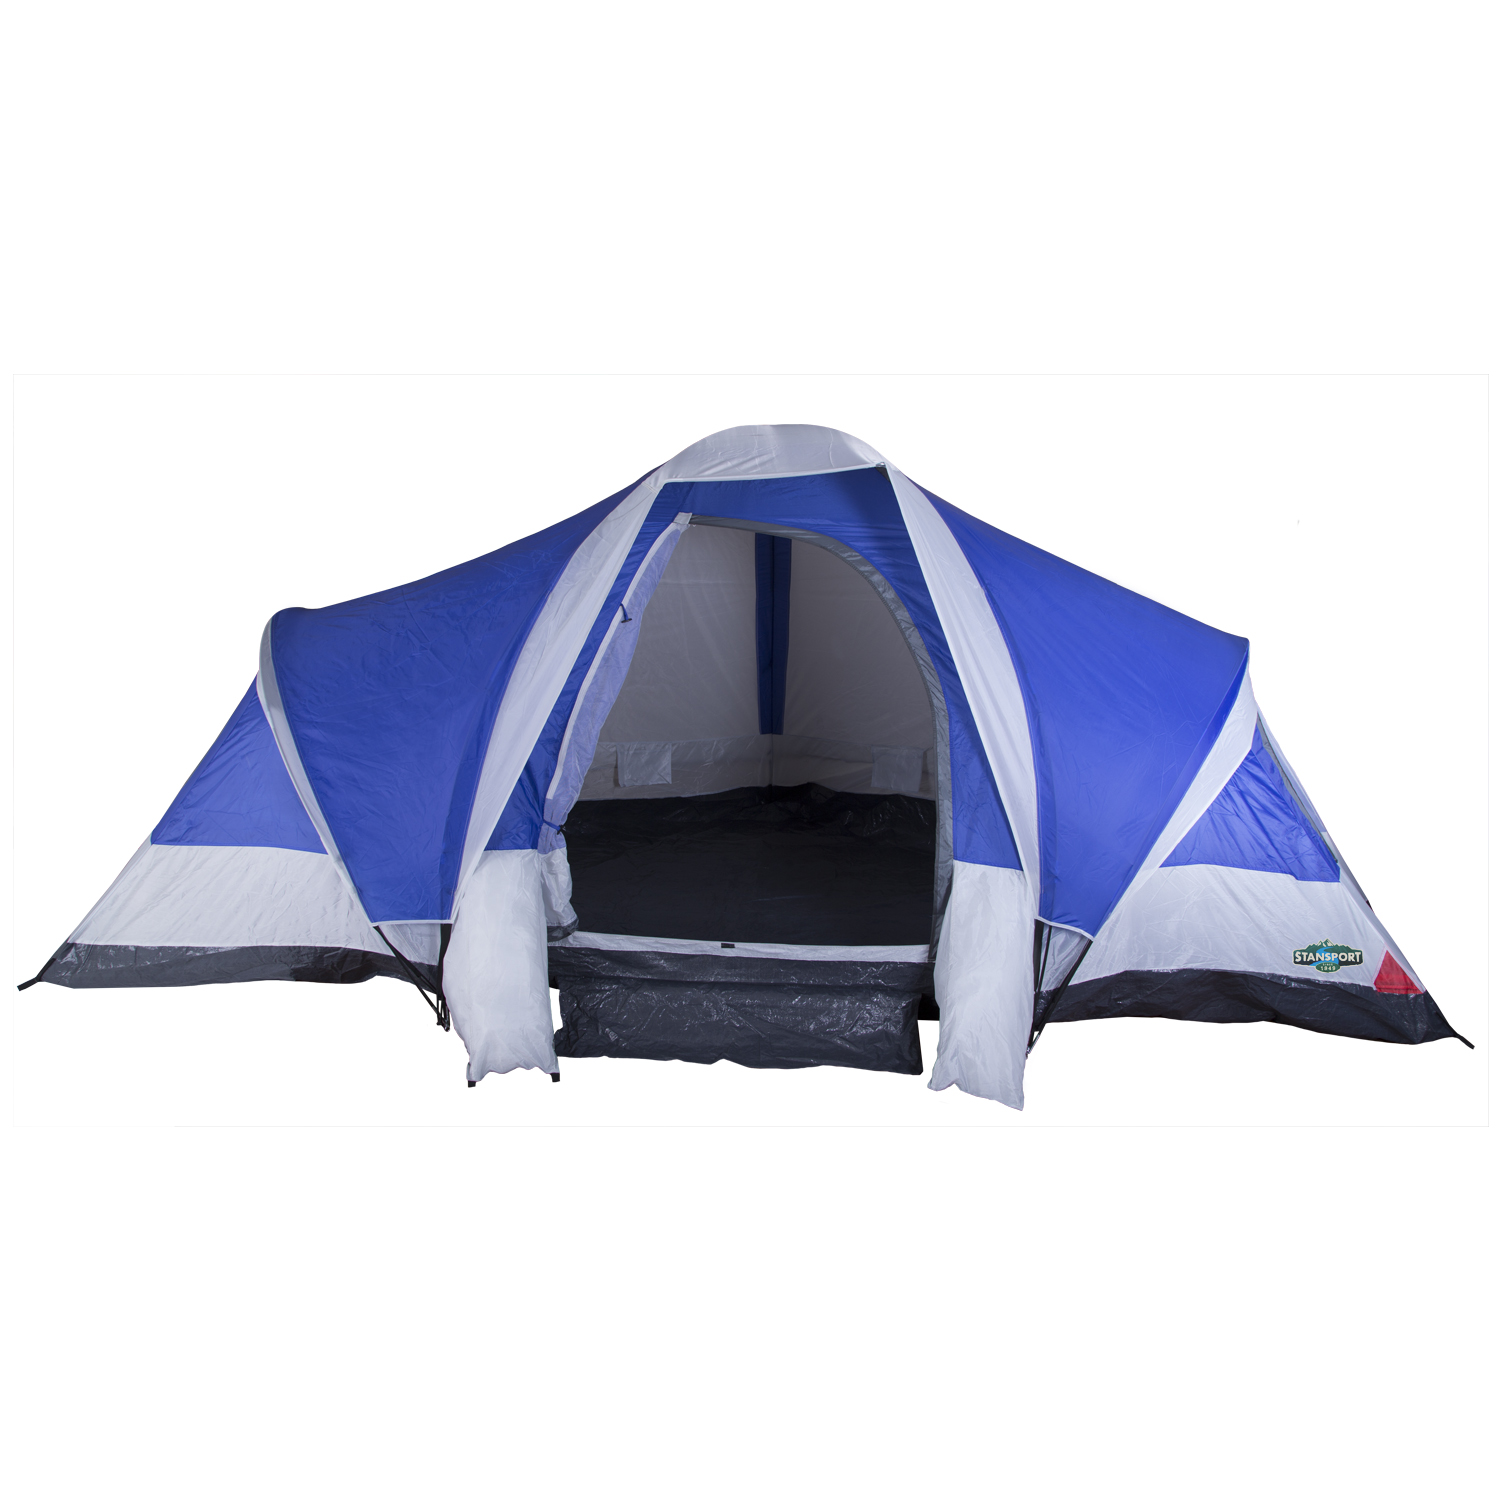 Stansport 2260 10 Feet x 18 Feet x 72 Inches  Grand 18 Family Tent  in stock